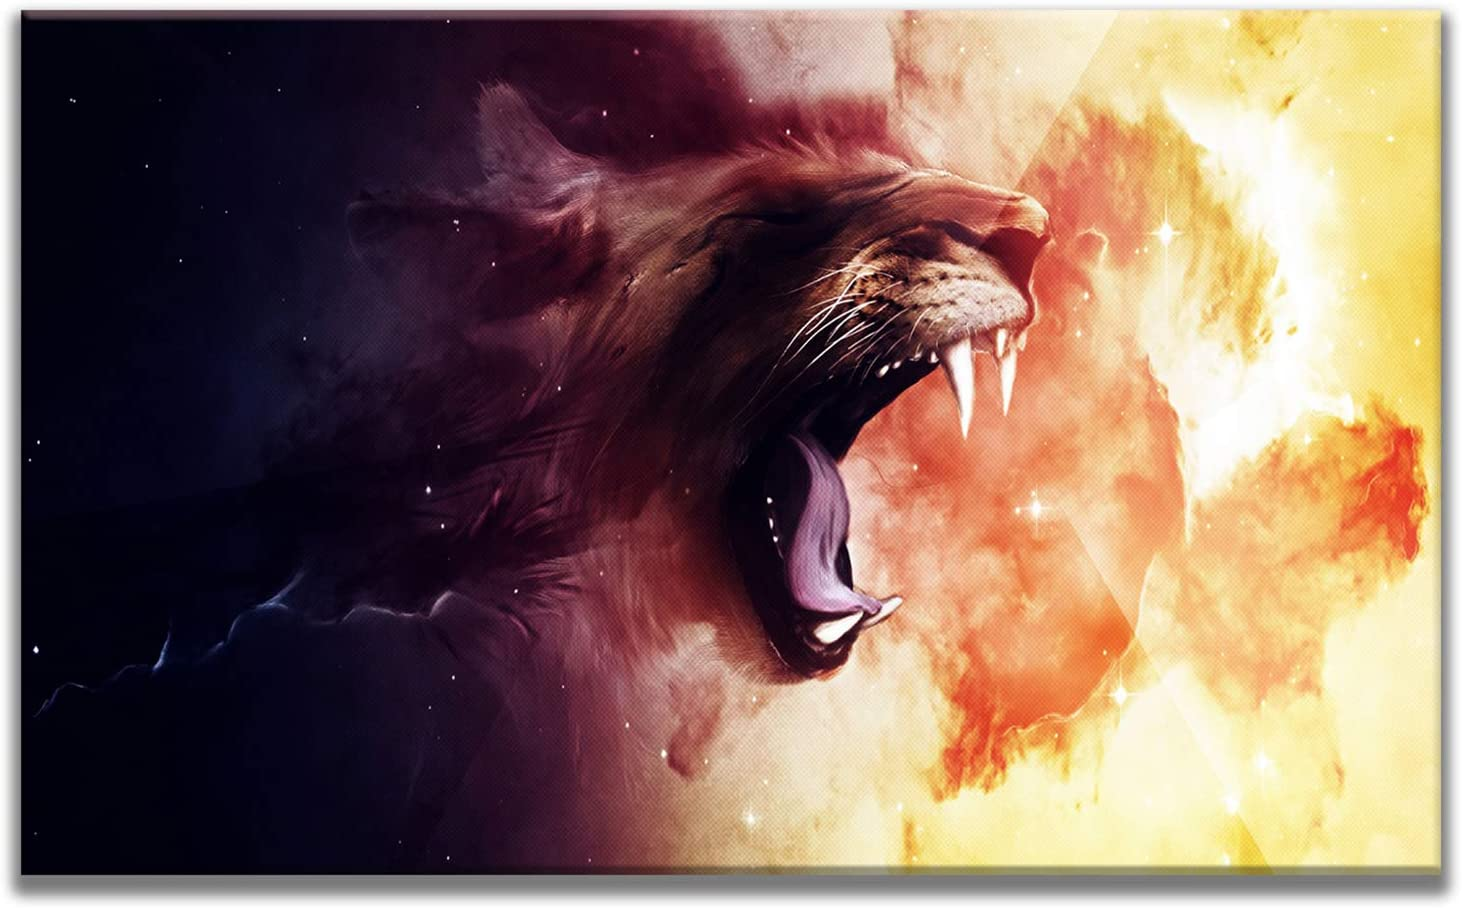 MuYu Art 24x36 inch Abstract Painting Giclee Artwork Prints Picture Wall Art Painting Yellow Black Lion Head Roaring Print On Canvas Framed for Home Home Living Room Bedroom Office Modern Decoration